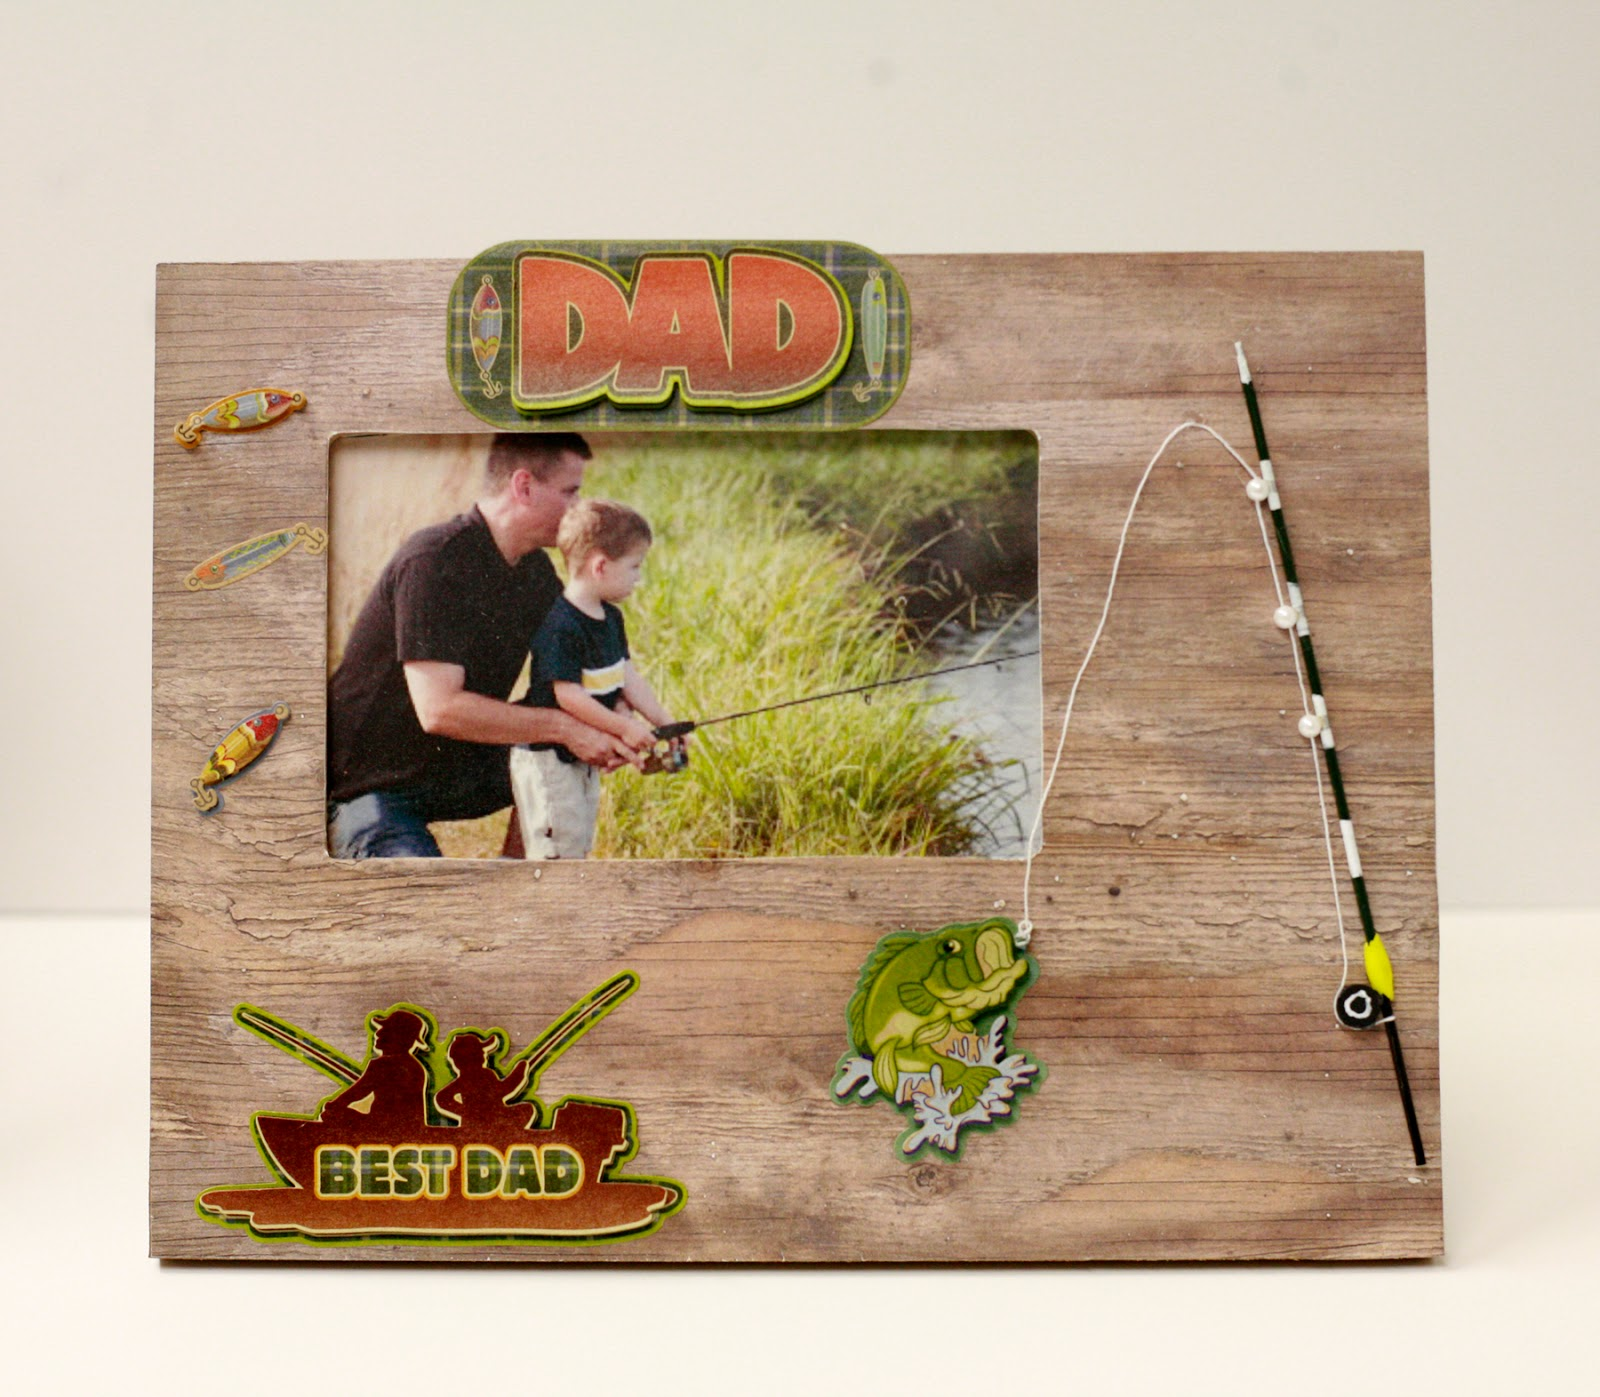 Ben Franklin Crafts And Frame Shop Make A Best Dad Frame For